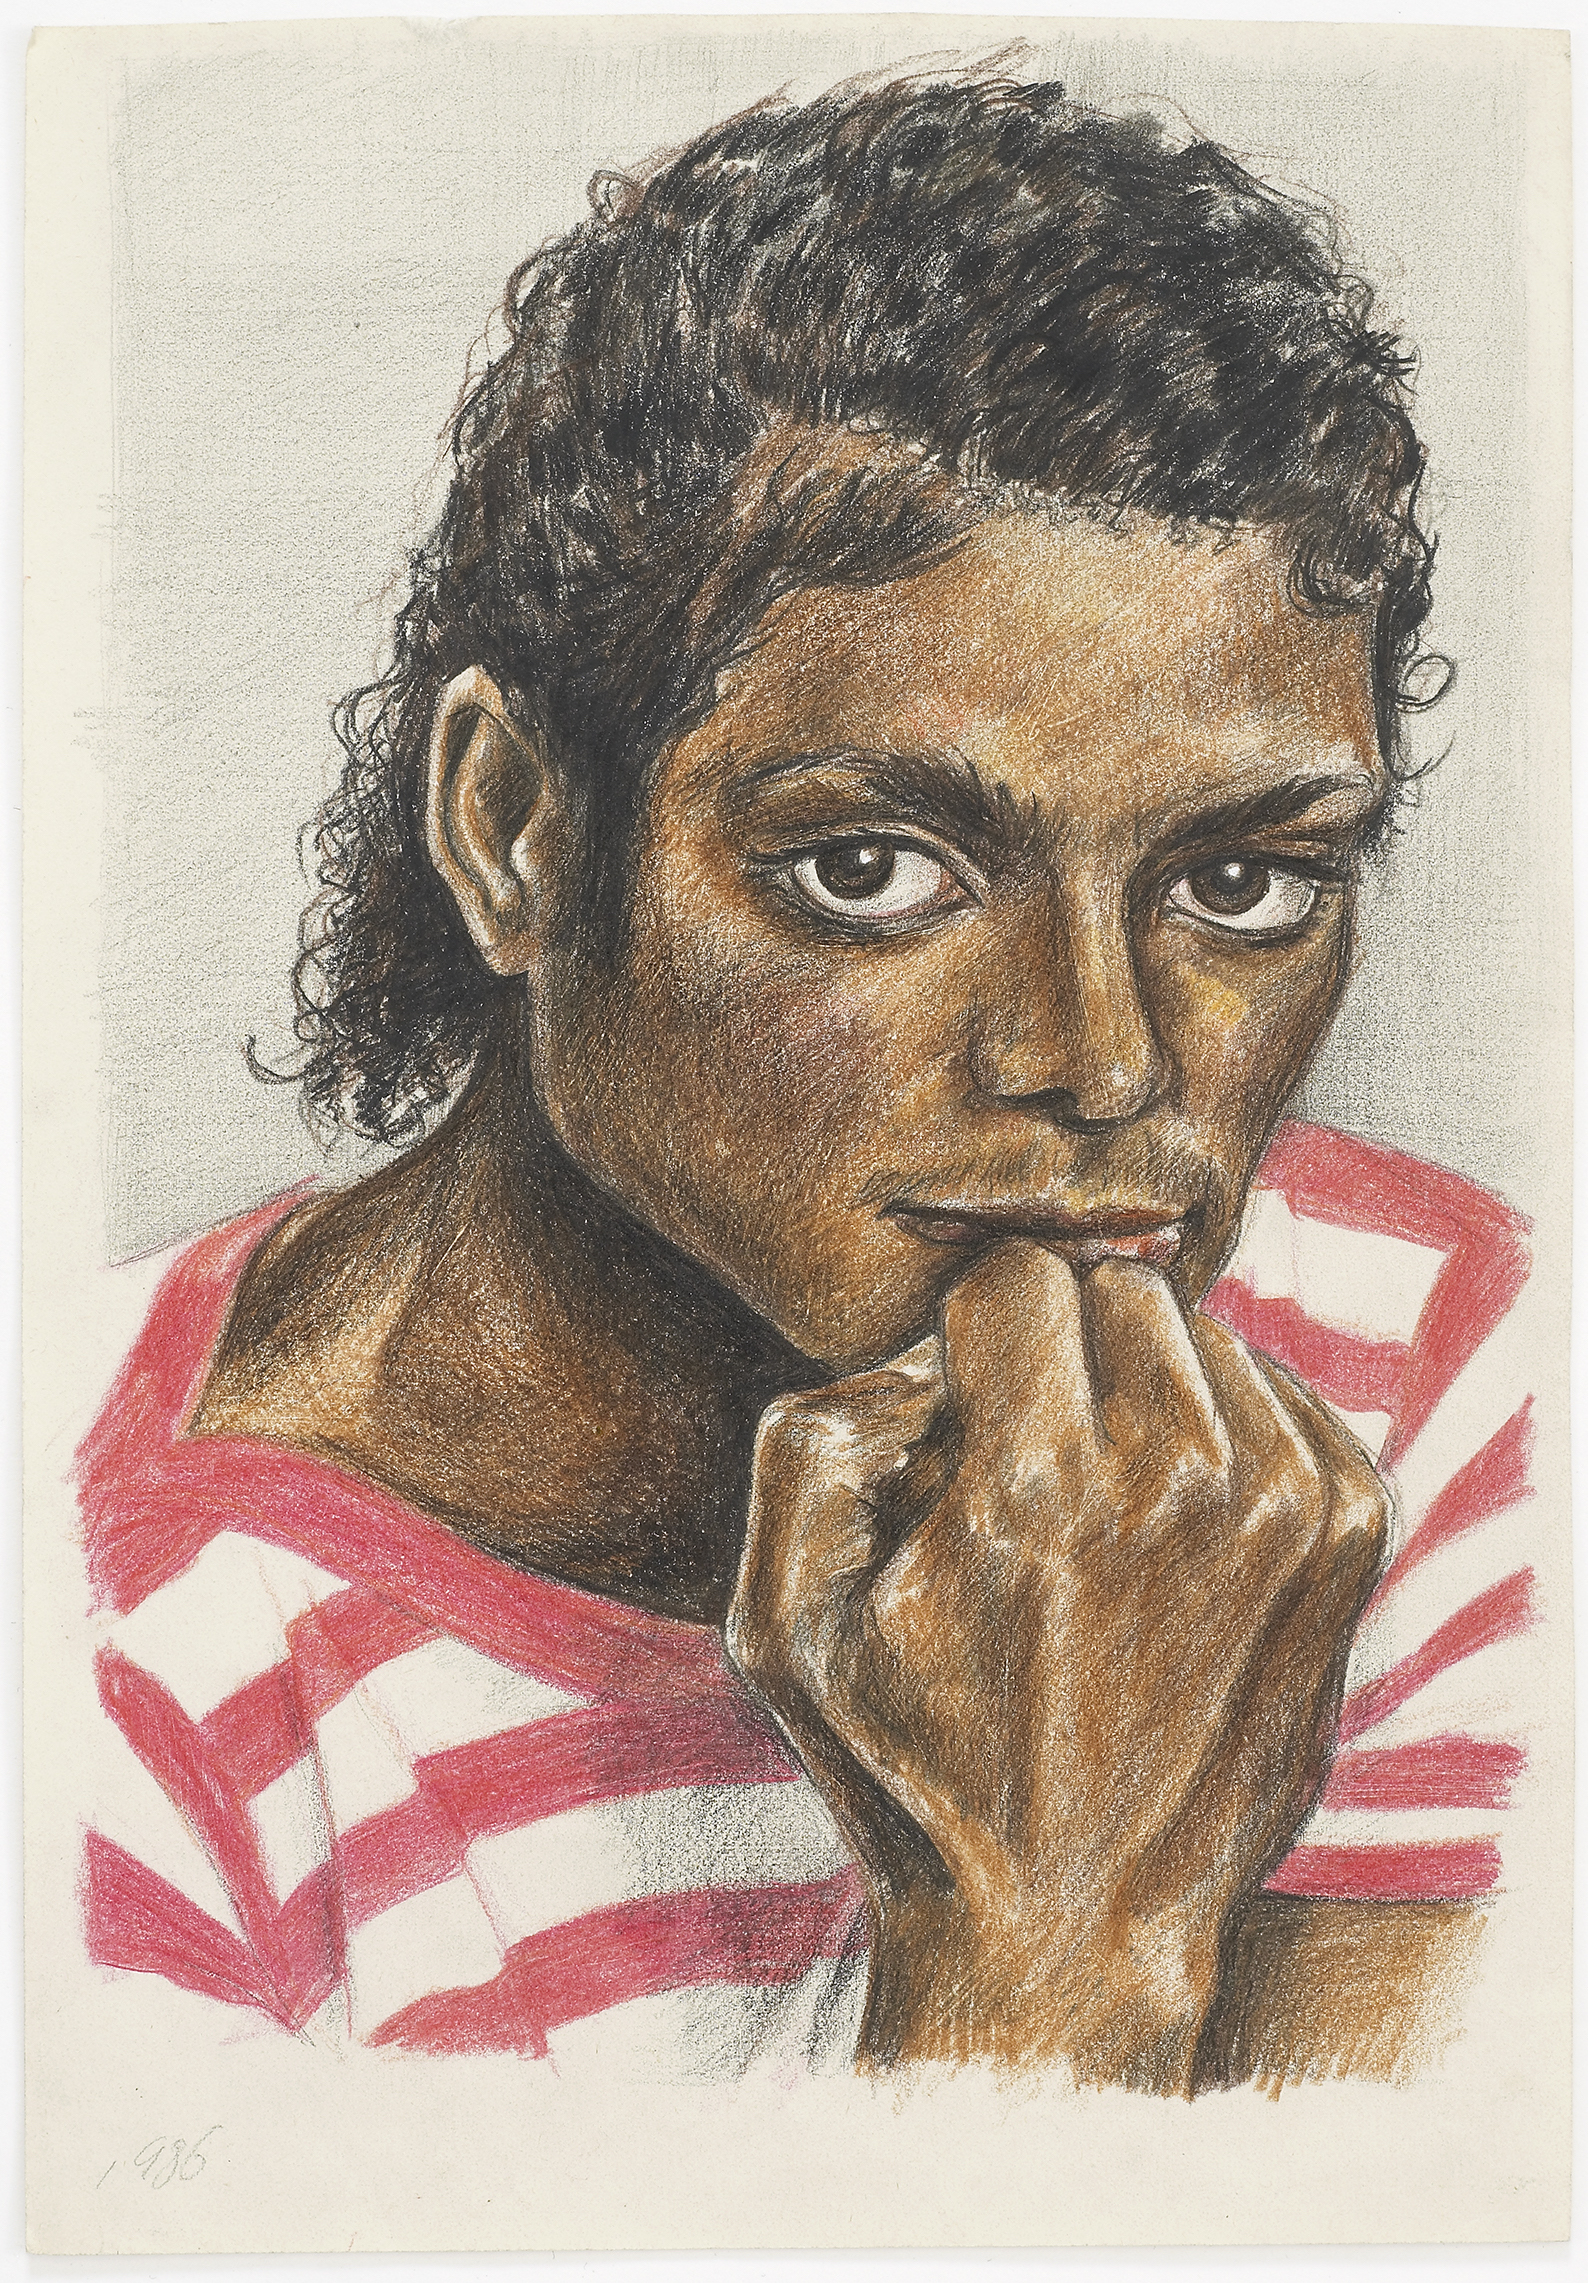 Dawn Mellor, Michael Jackson (36). Courtesy of the artist, Studio Voltaire and Koenig Books